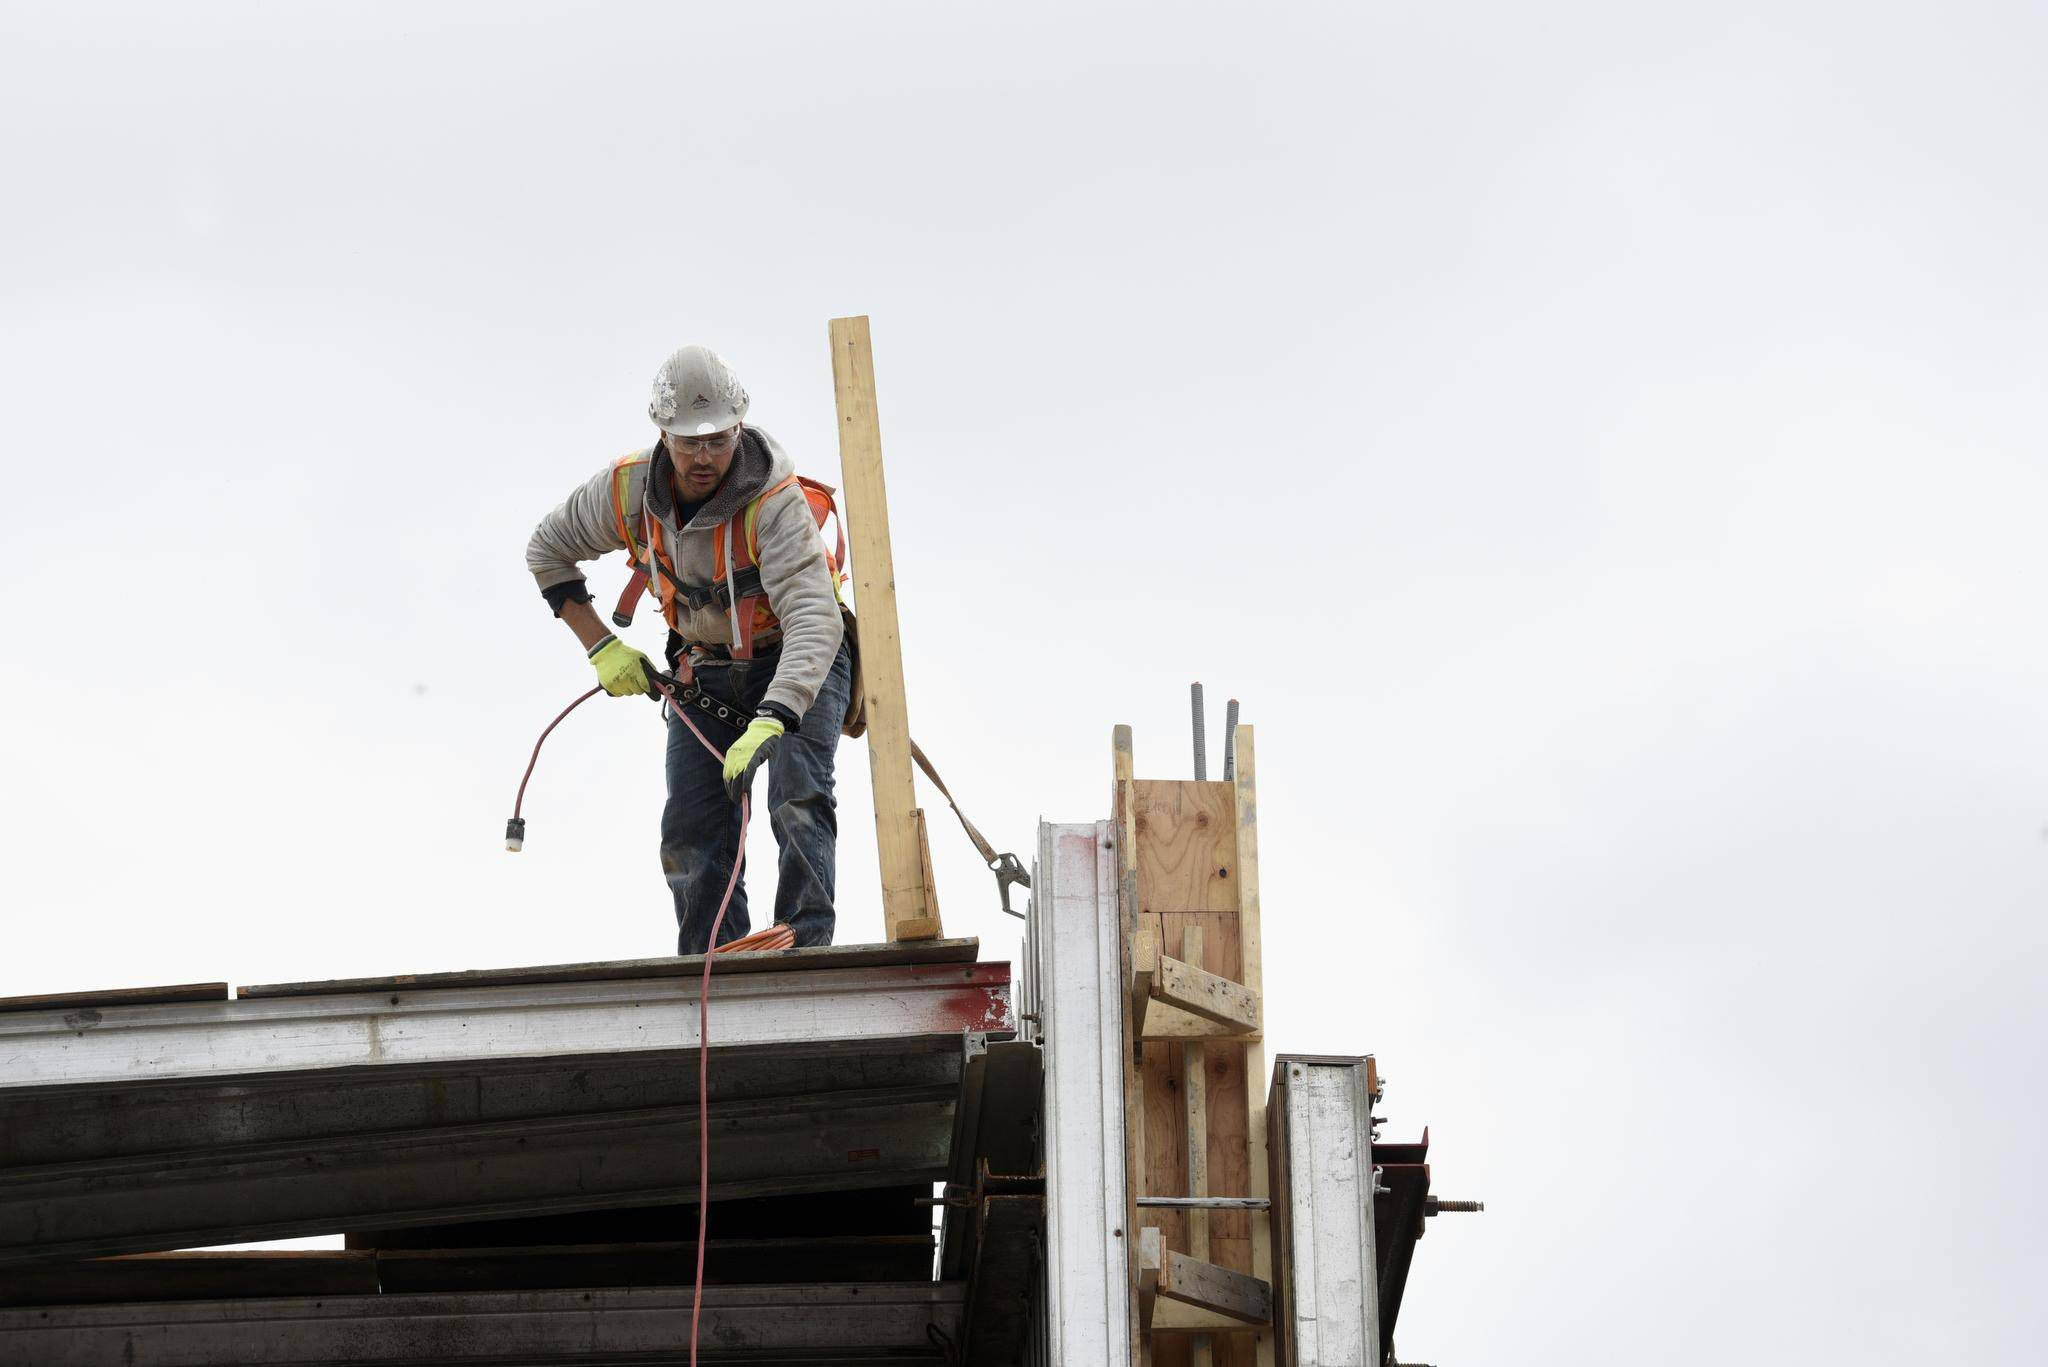 Falling jobless rate, rising wages unlikely to sway Bank of Canada